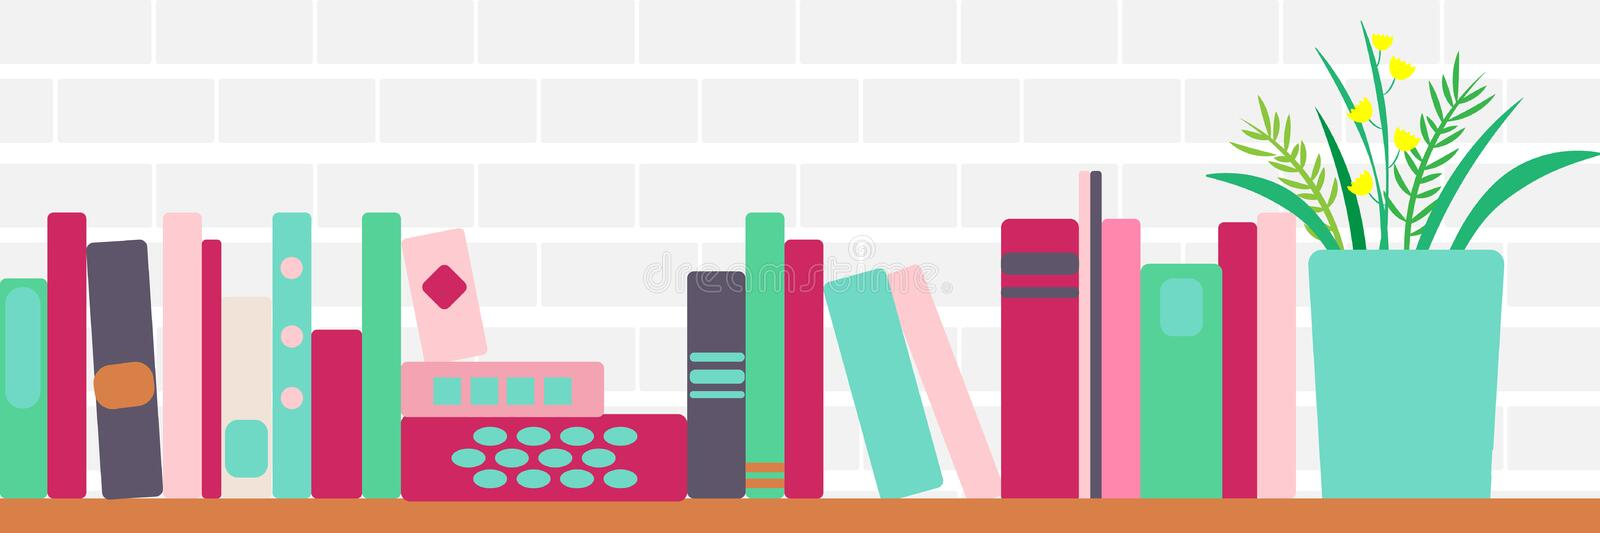 Vector illustration of bookshelves with retro style books and flowers royalty free illustration